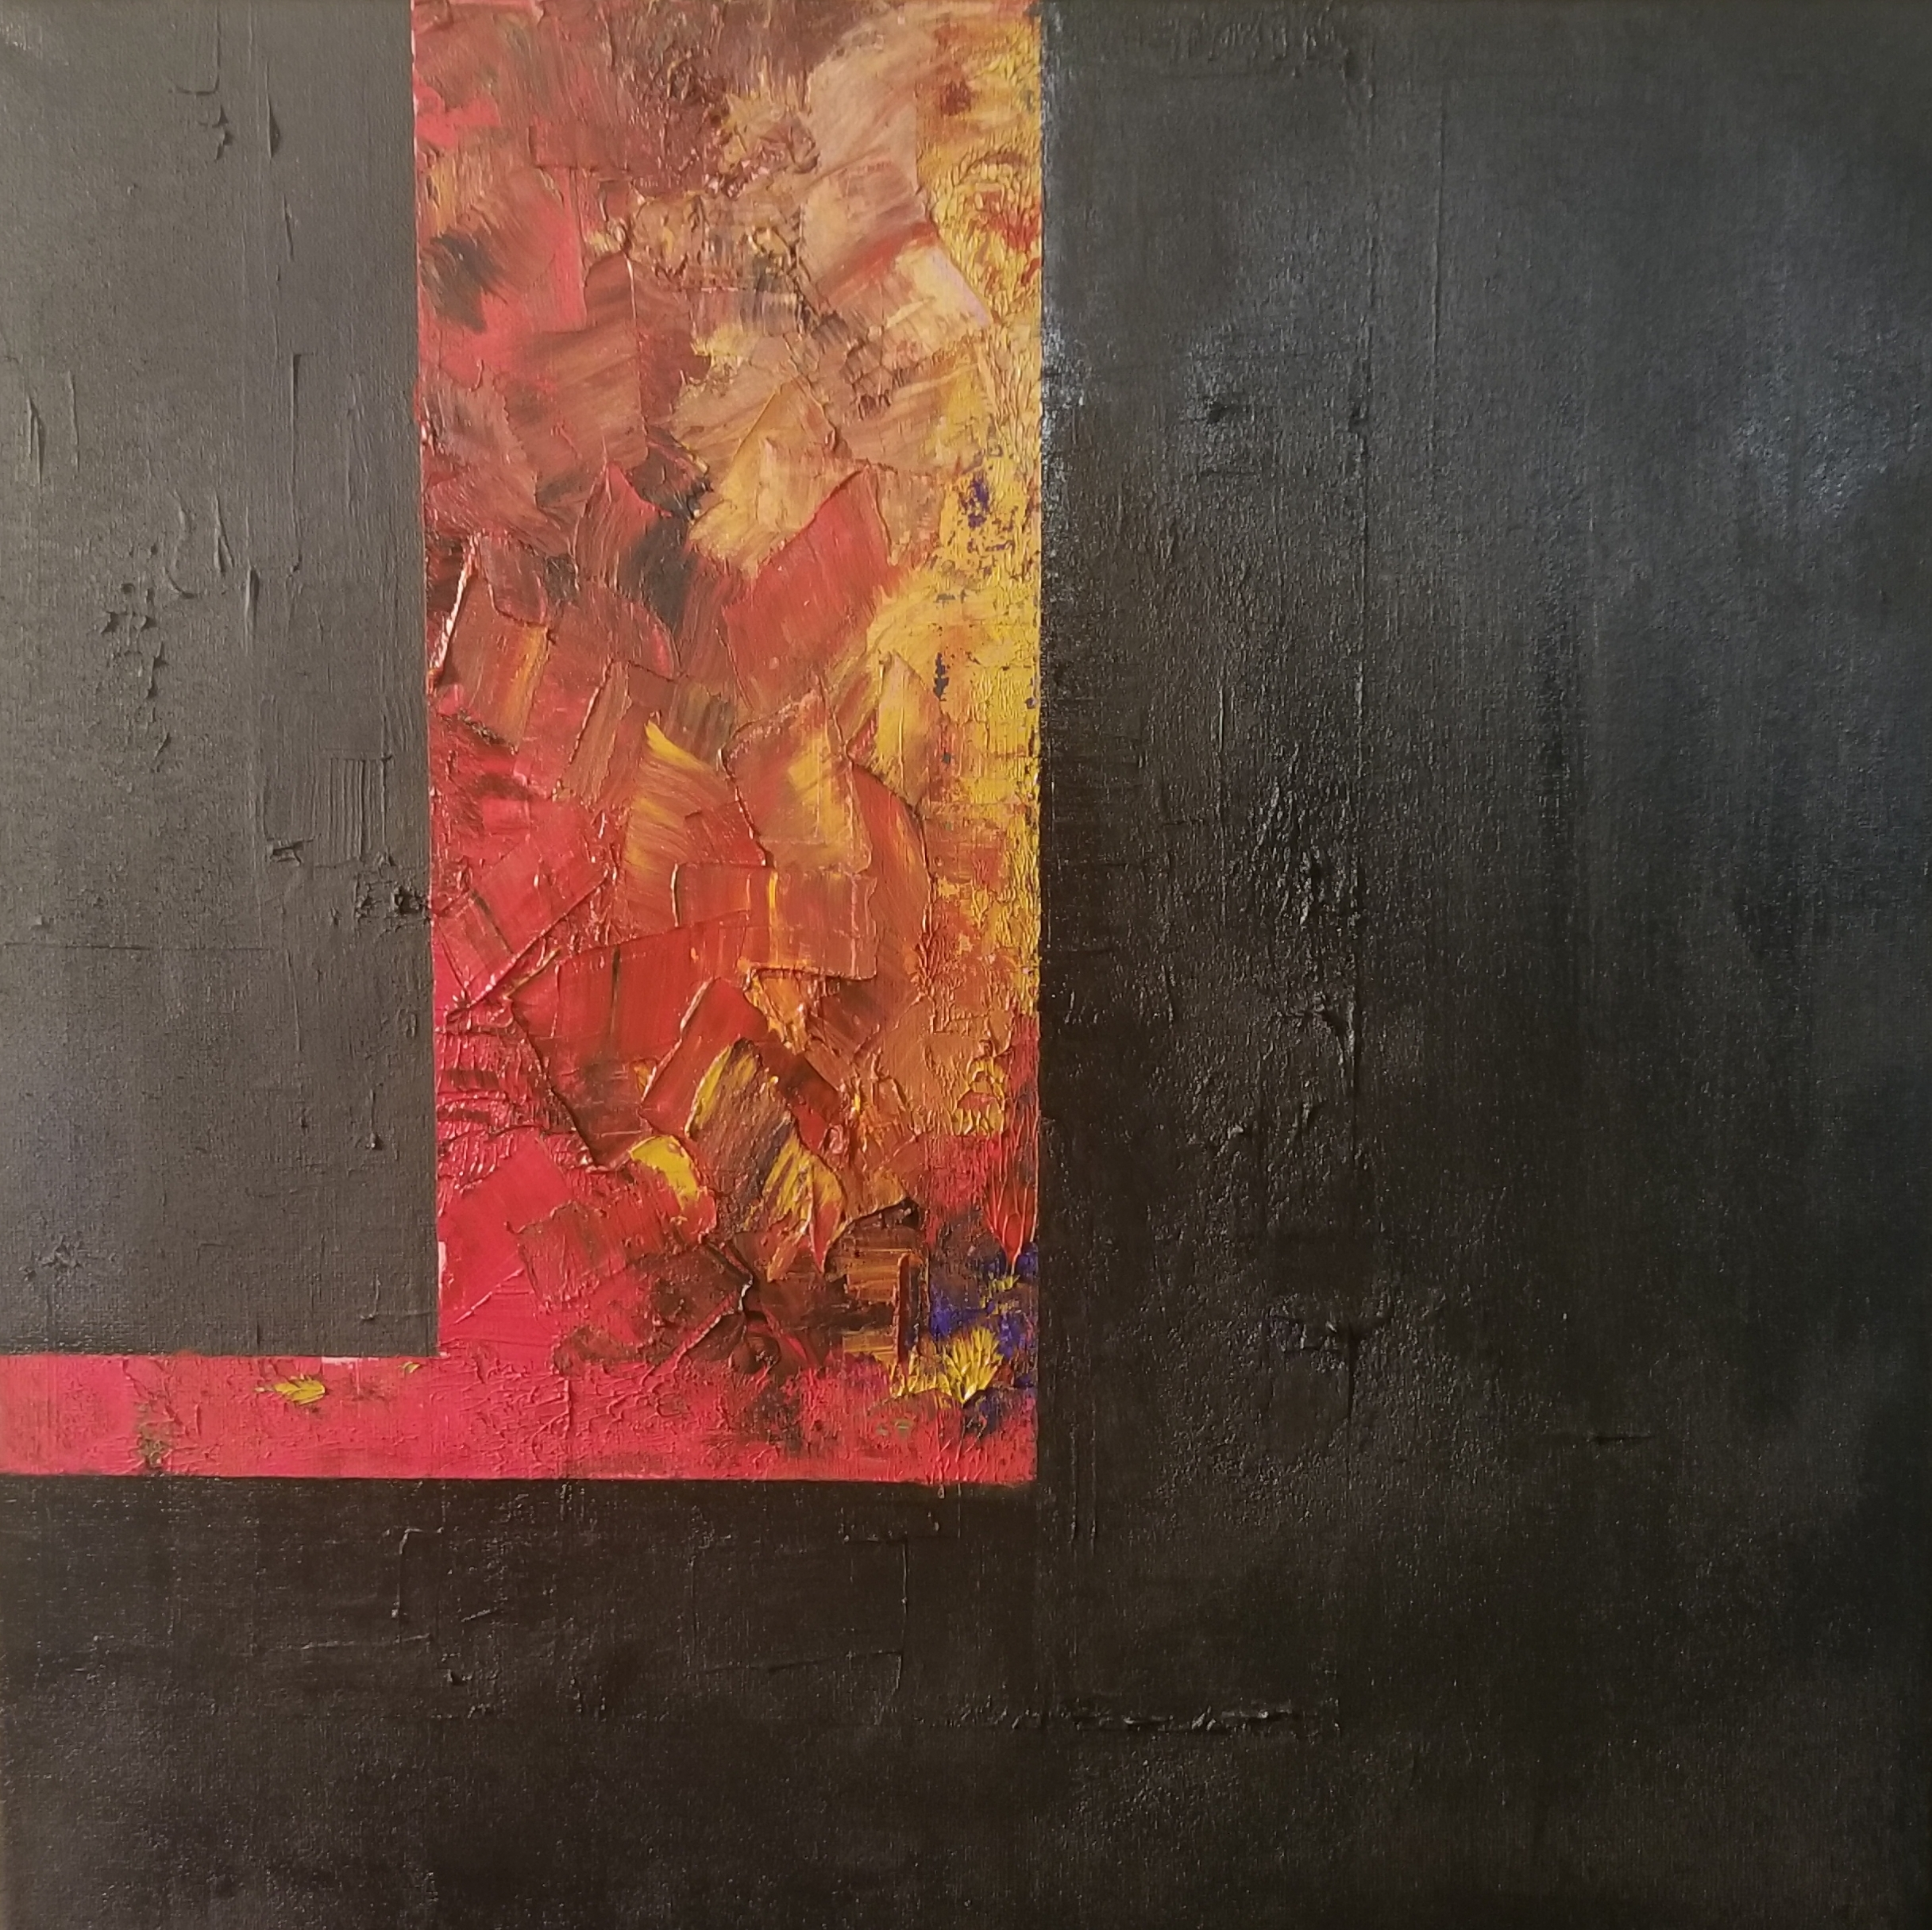 Red & Yellow on Black Untitled 2018